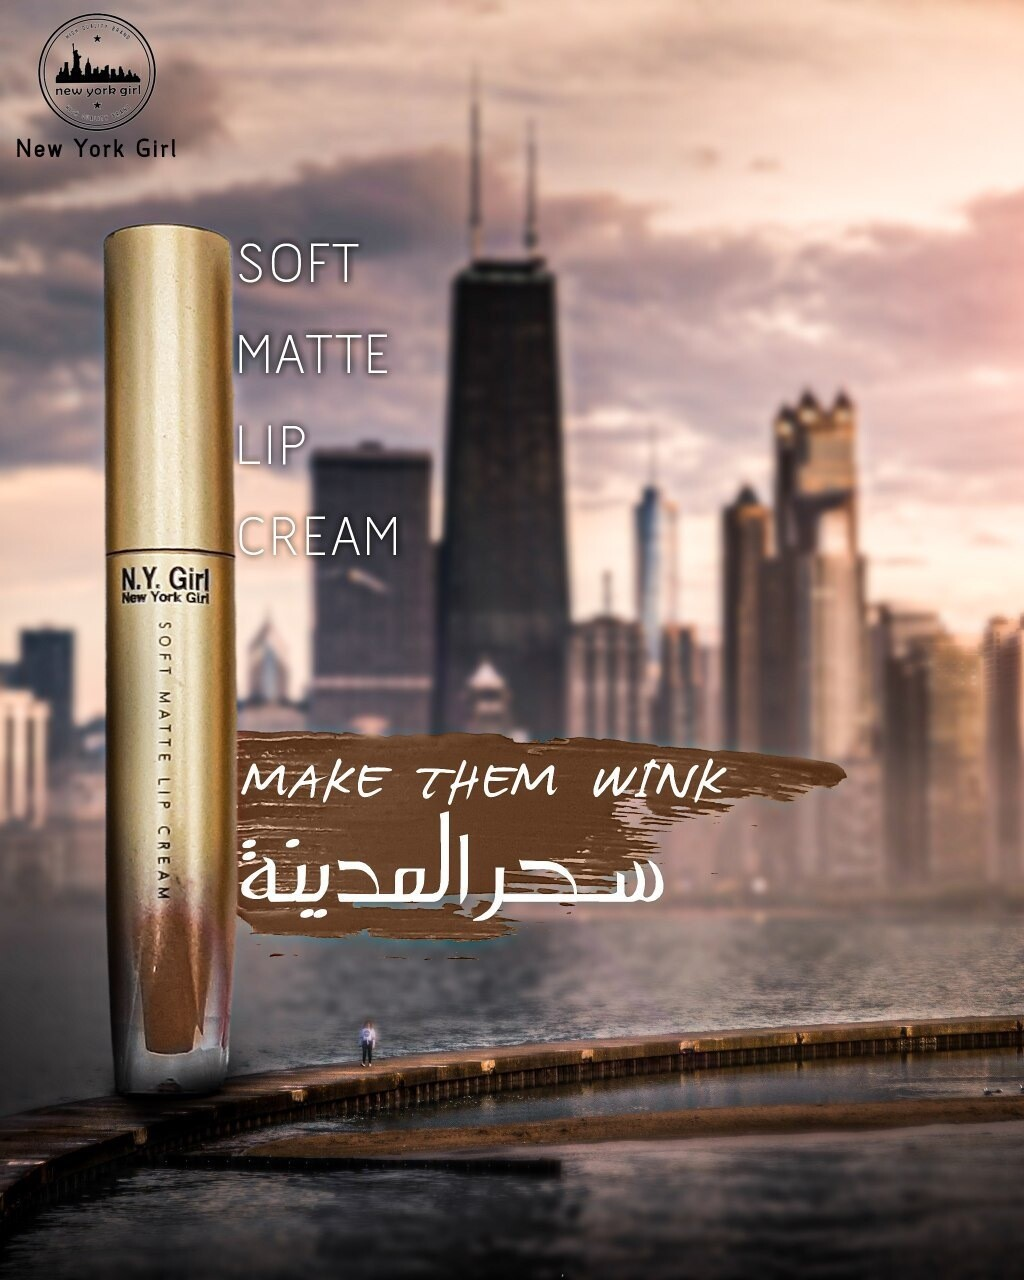 Soft Matte Lip Cream - Make Them Wink